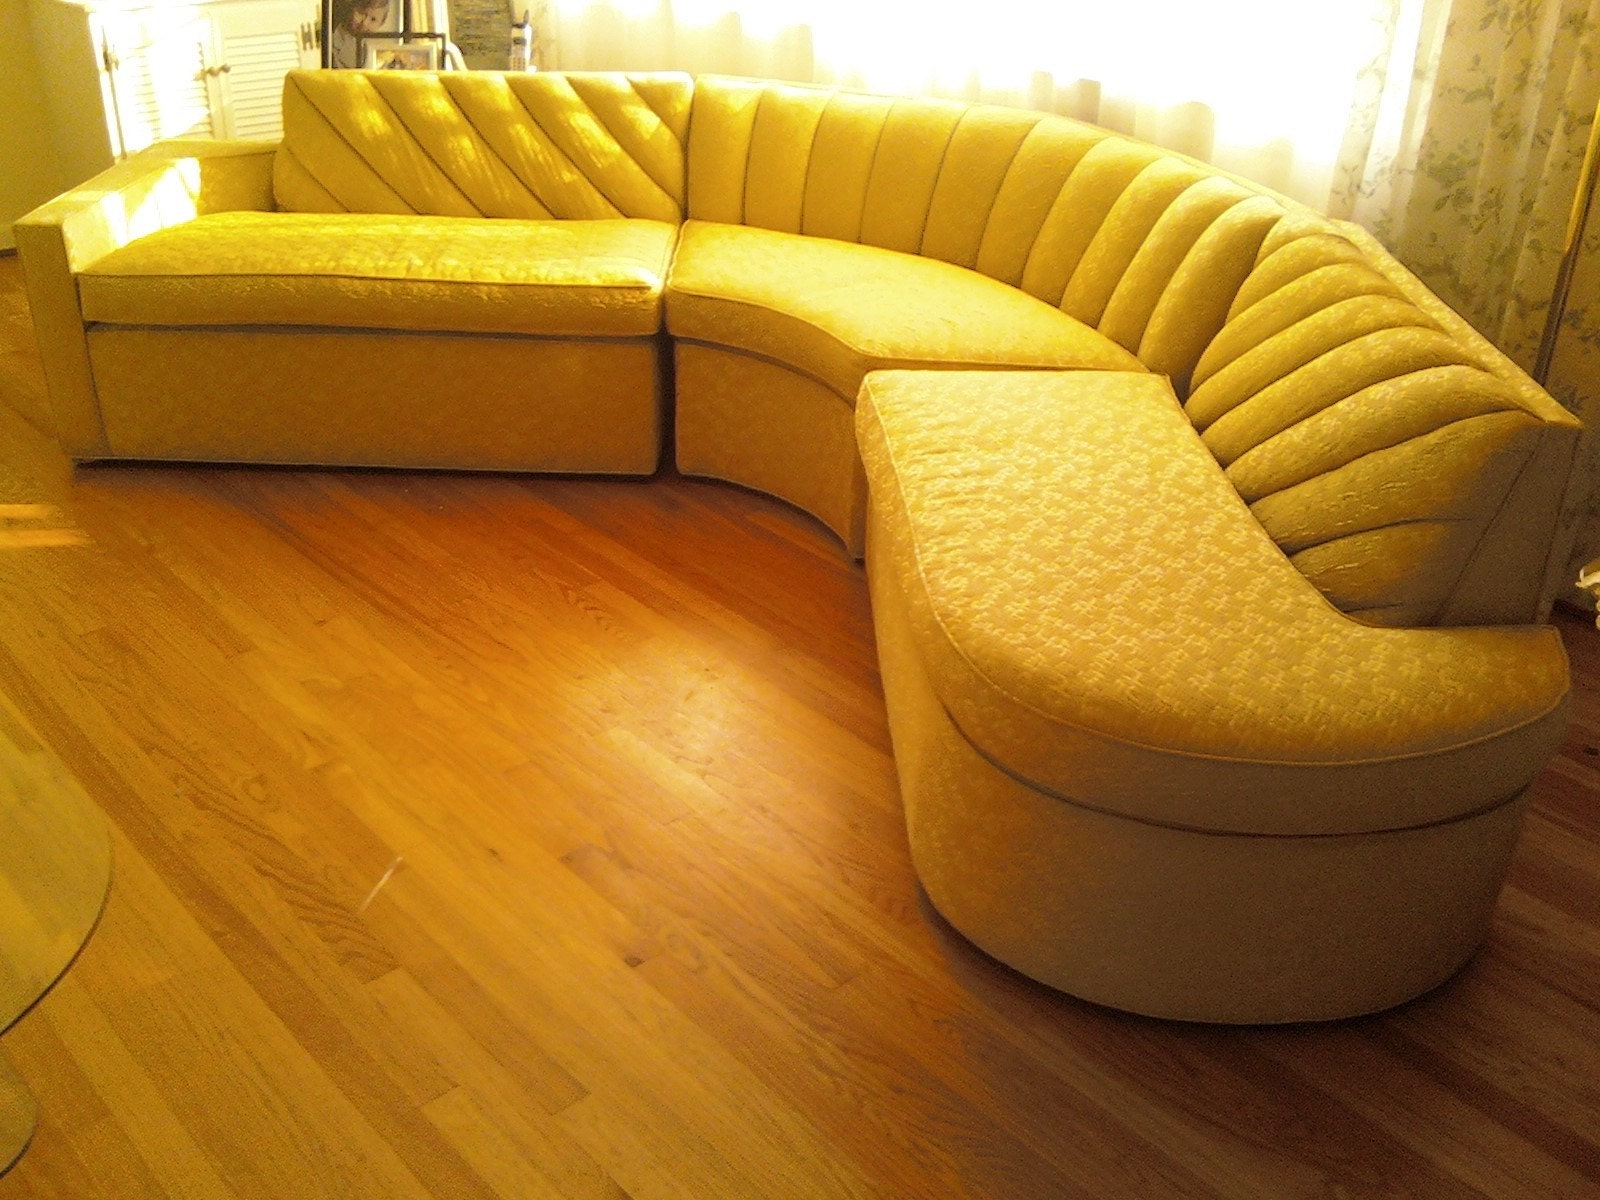 Vintage mid century sectional sofa large like new for Vintage sites like etsy